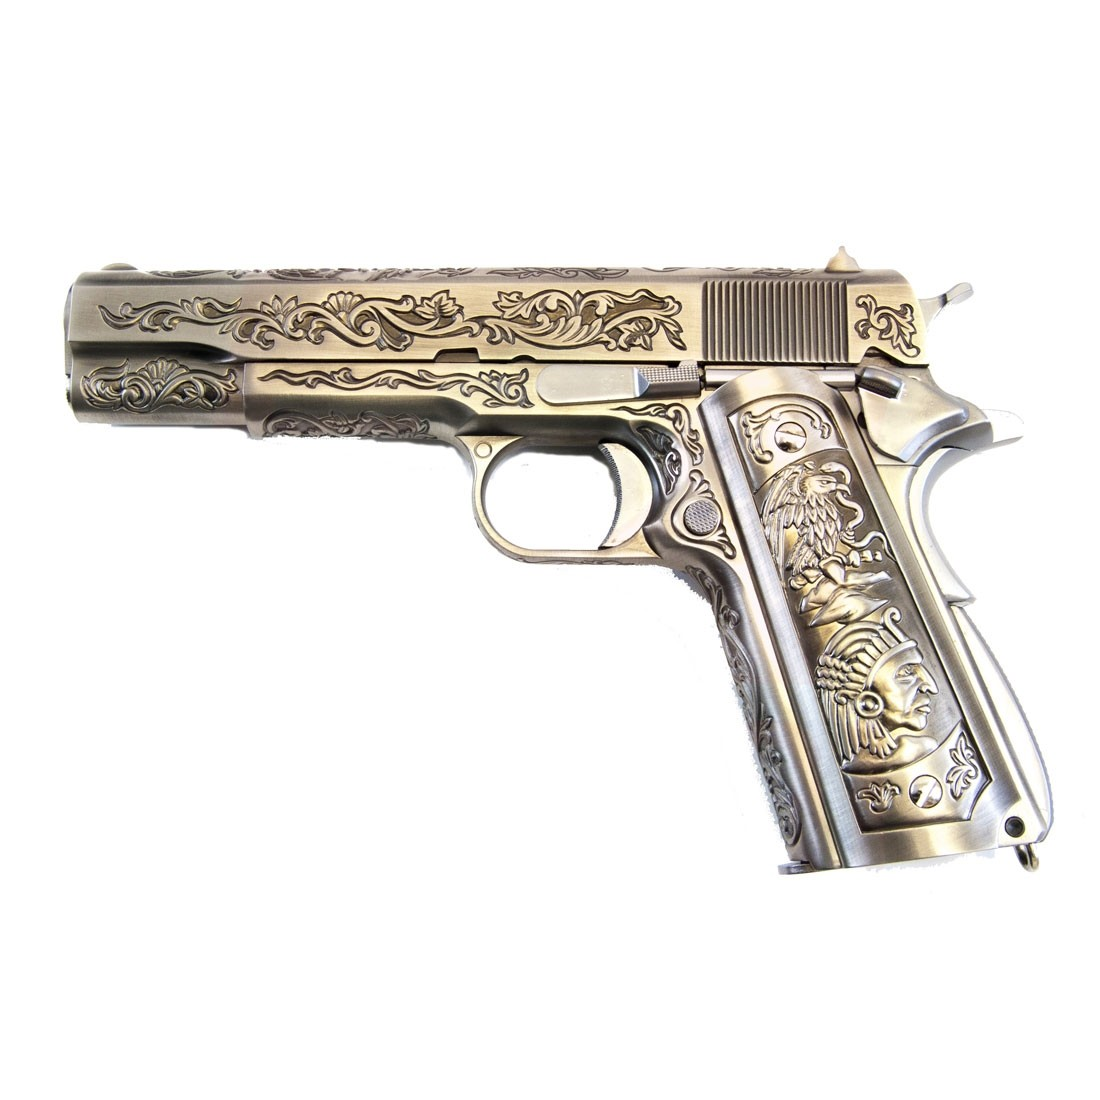 WE Colt 1911Chrome Engraved Special Edition 'Mehico Druglord' Airsoft GBB Pistol